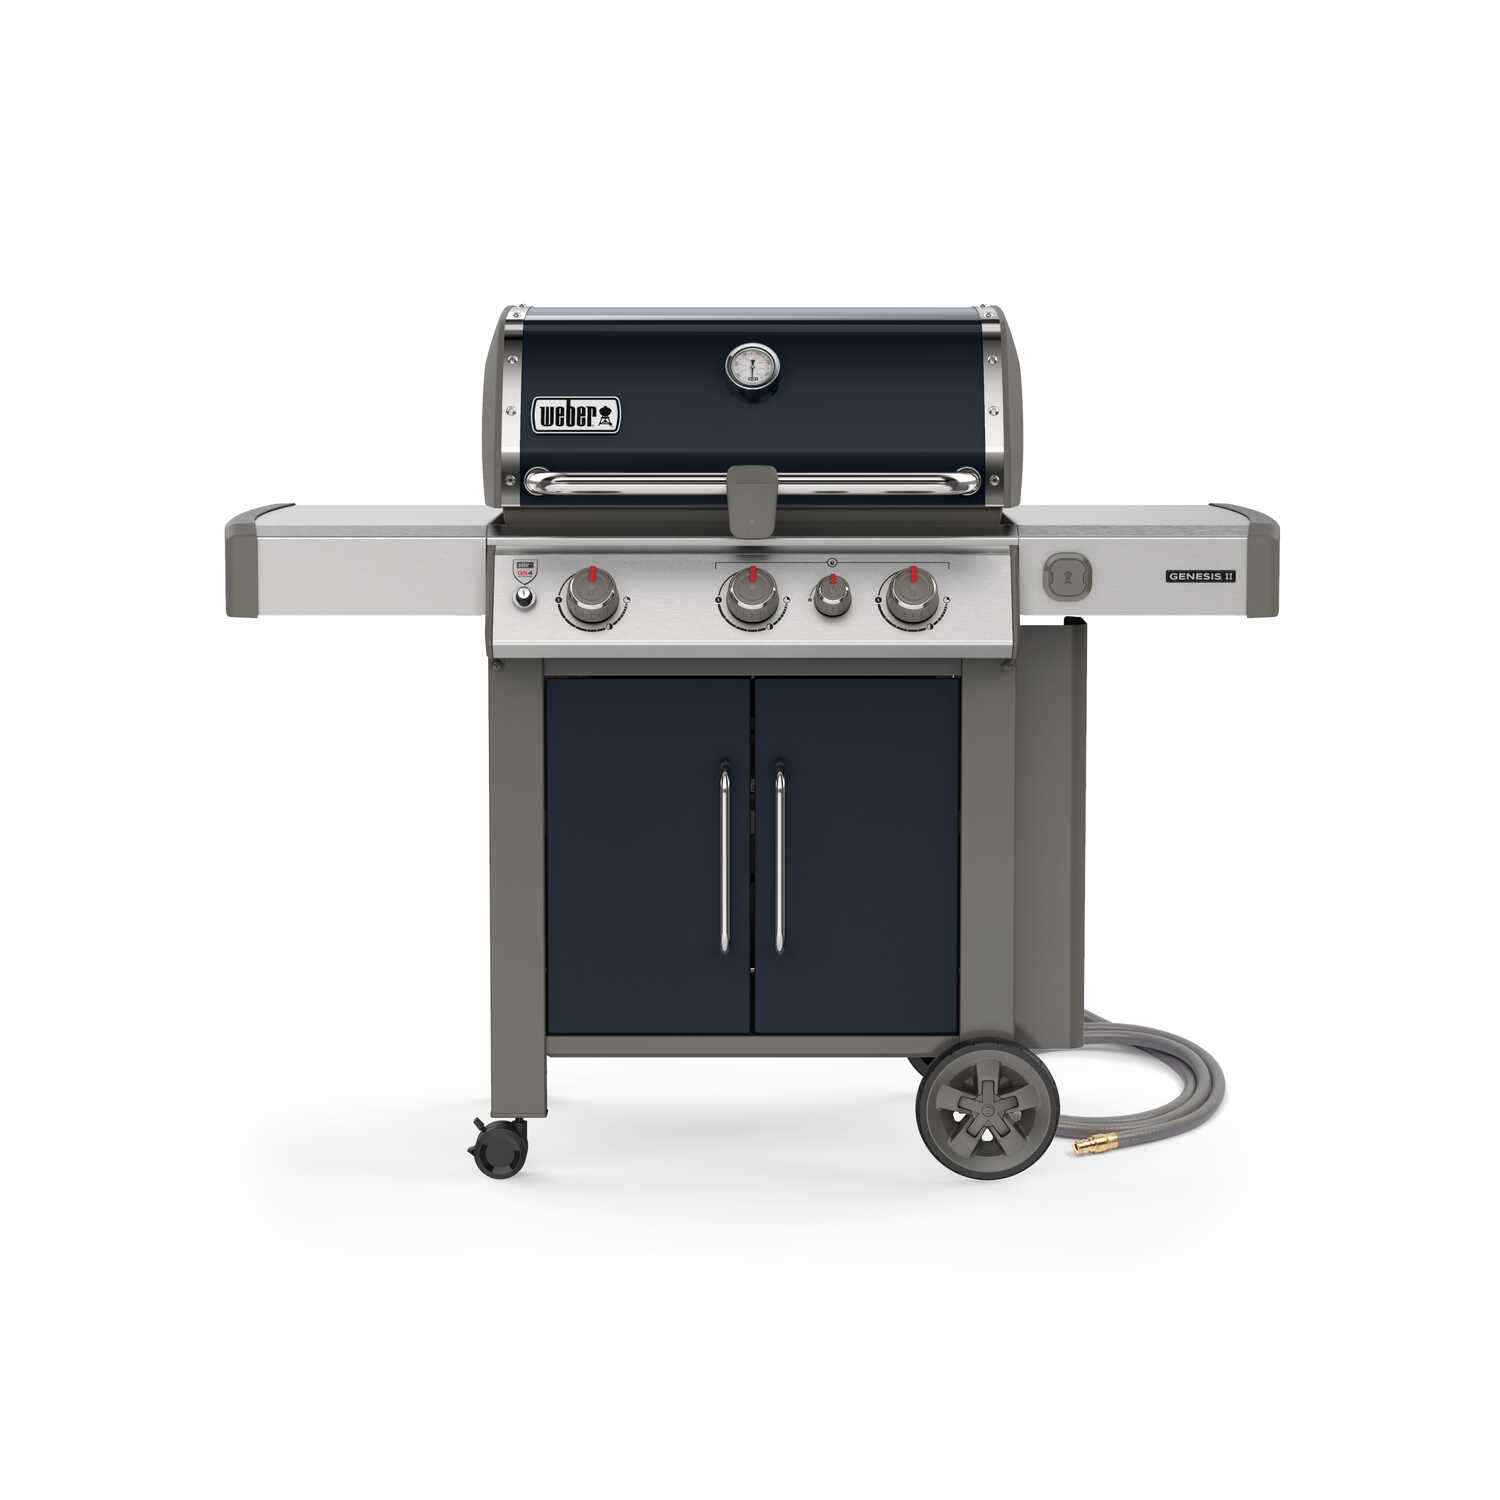 Weber  Genesis II E-325  Natural Gas  Freestanding  3 burners Indigo  Grill